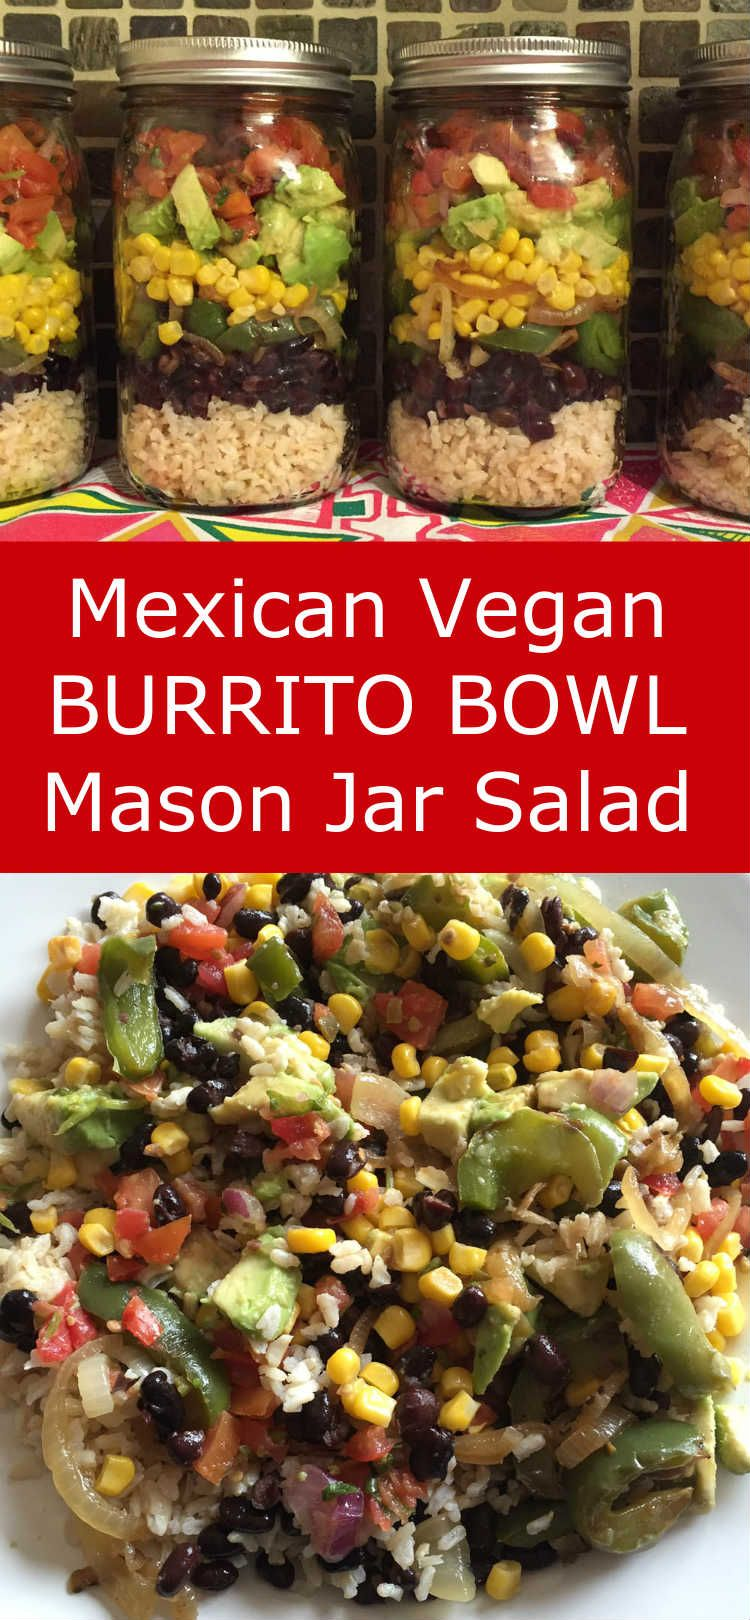 Mexican Vegan Burrito Bowl Mason Jar Salad Recipe - Chipotle Style! |